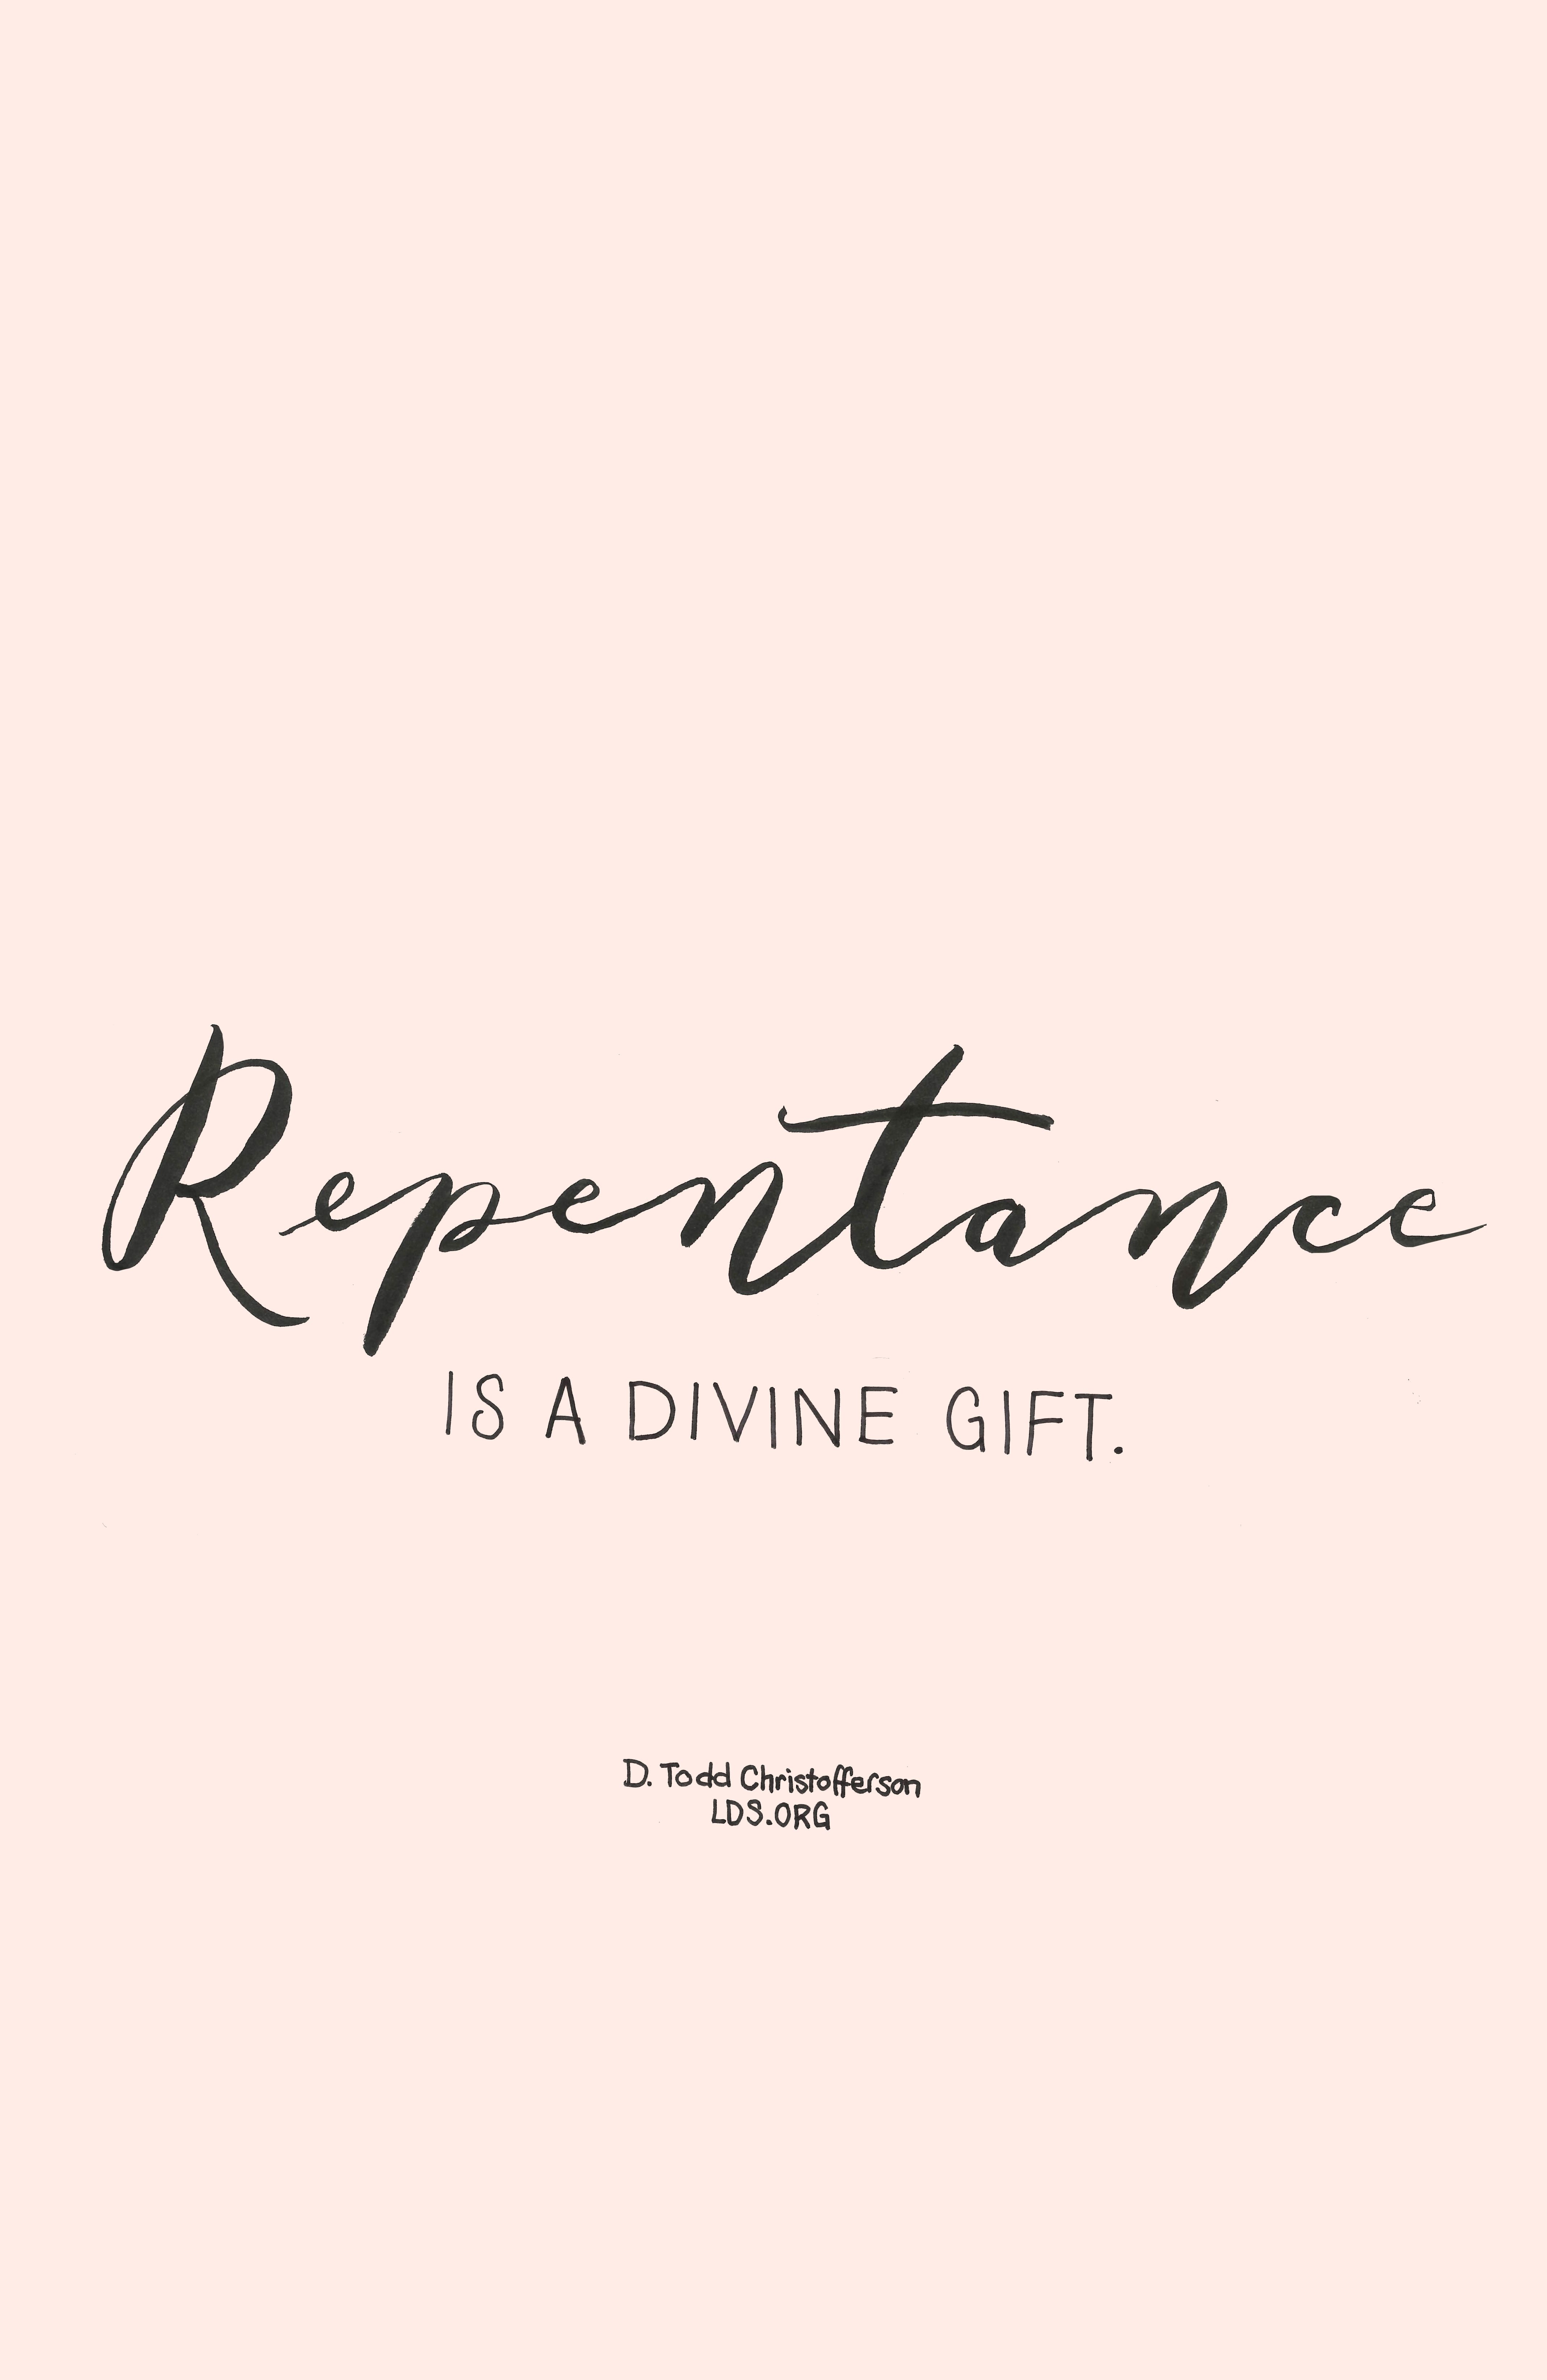 Repentance is a divine gift d todd christofferson lds faith repentance is a divine gift d todd christofferson lds faith stopboris Choice Image